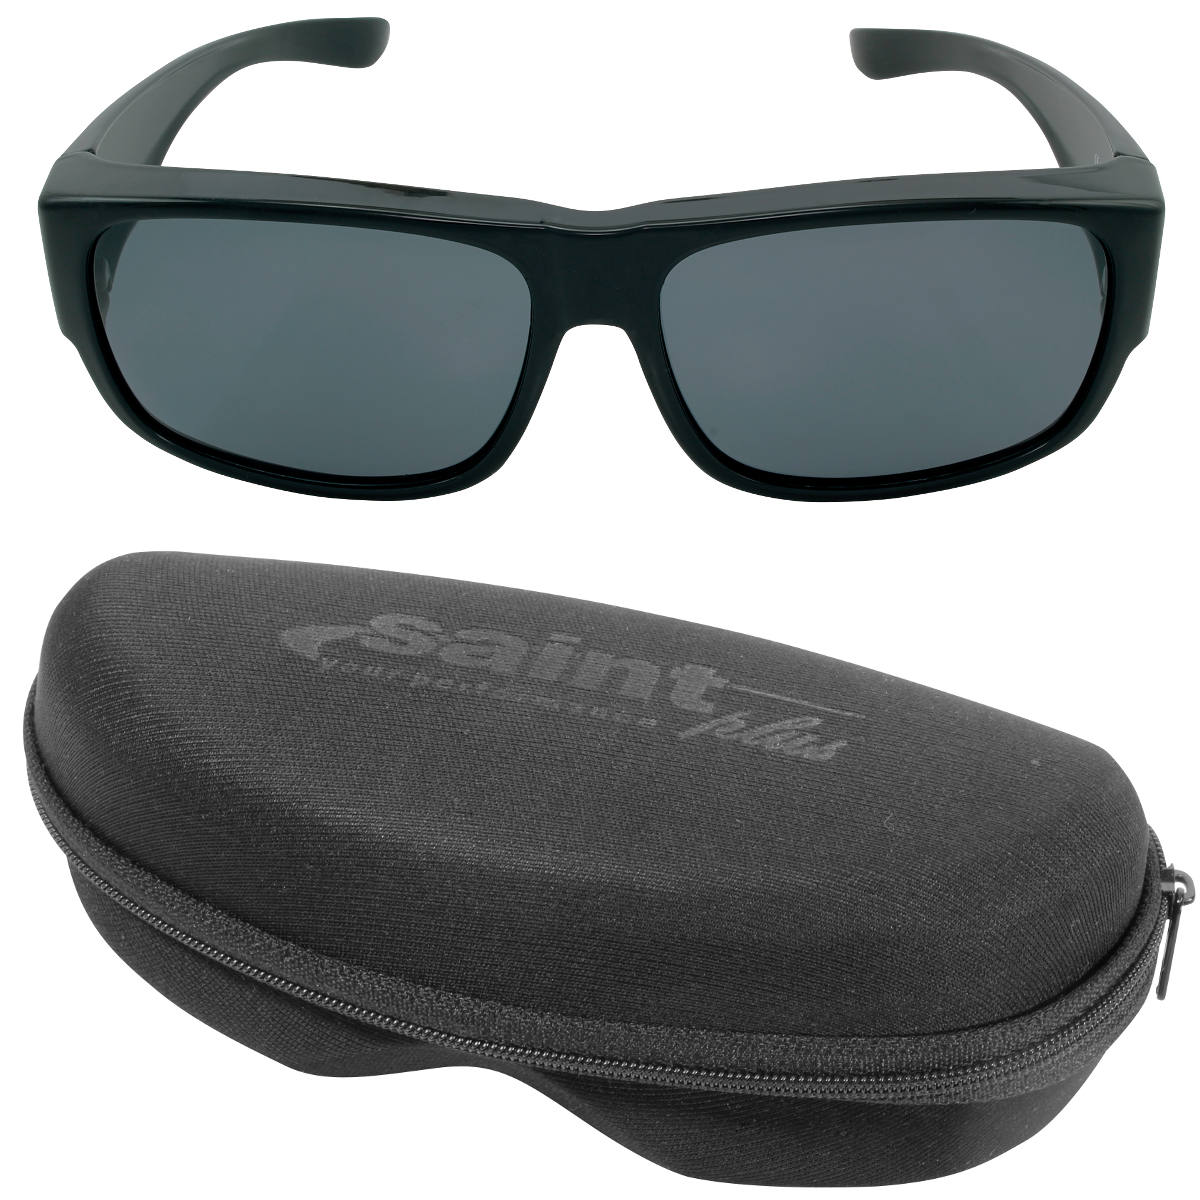 3a32cd3ae644c Óculos de Sol Polarizado Saint Plus Over Glass - Black - Bonzao Armas e  Pesca ...